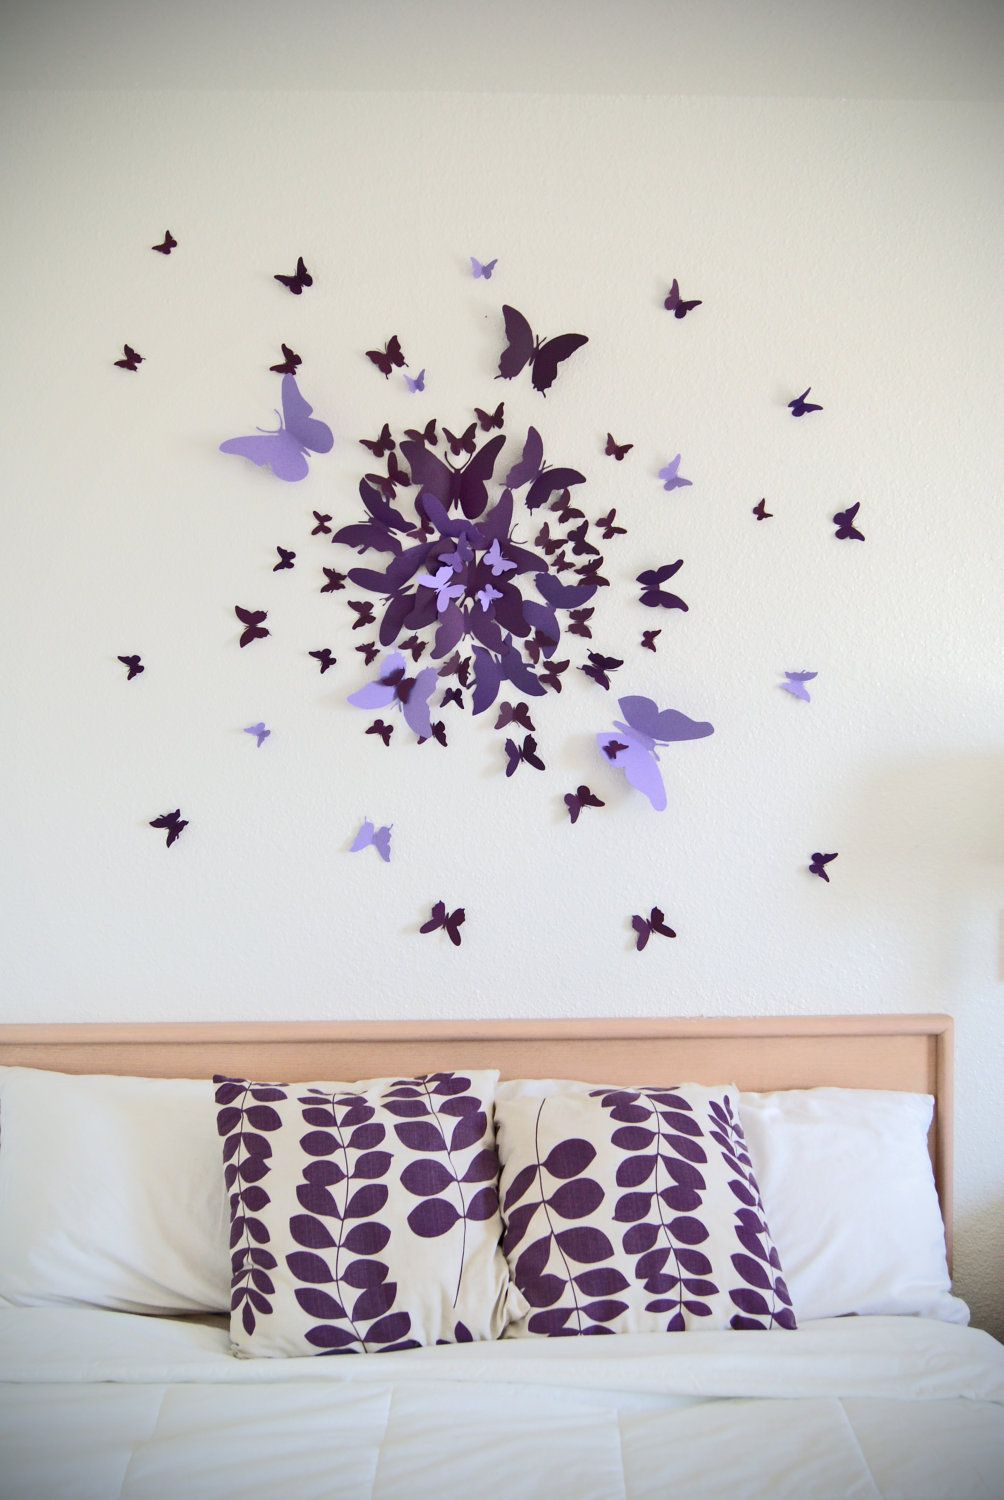 Free US Shipping D Butterfly Wall Art Circle Burst - Butterfly wall decals 3d